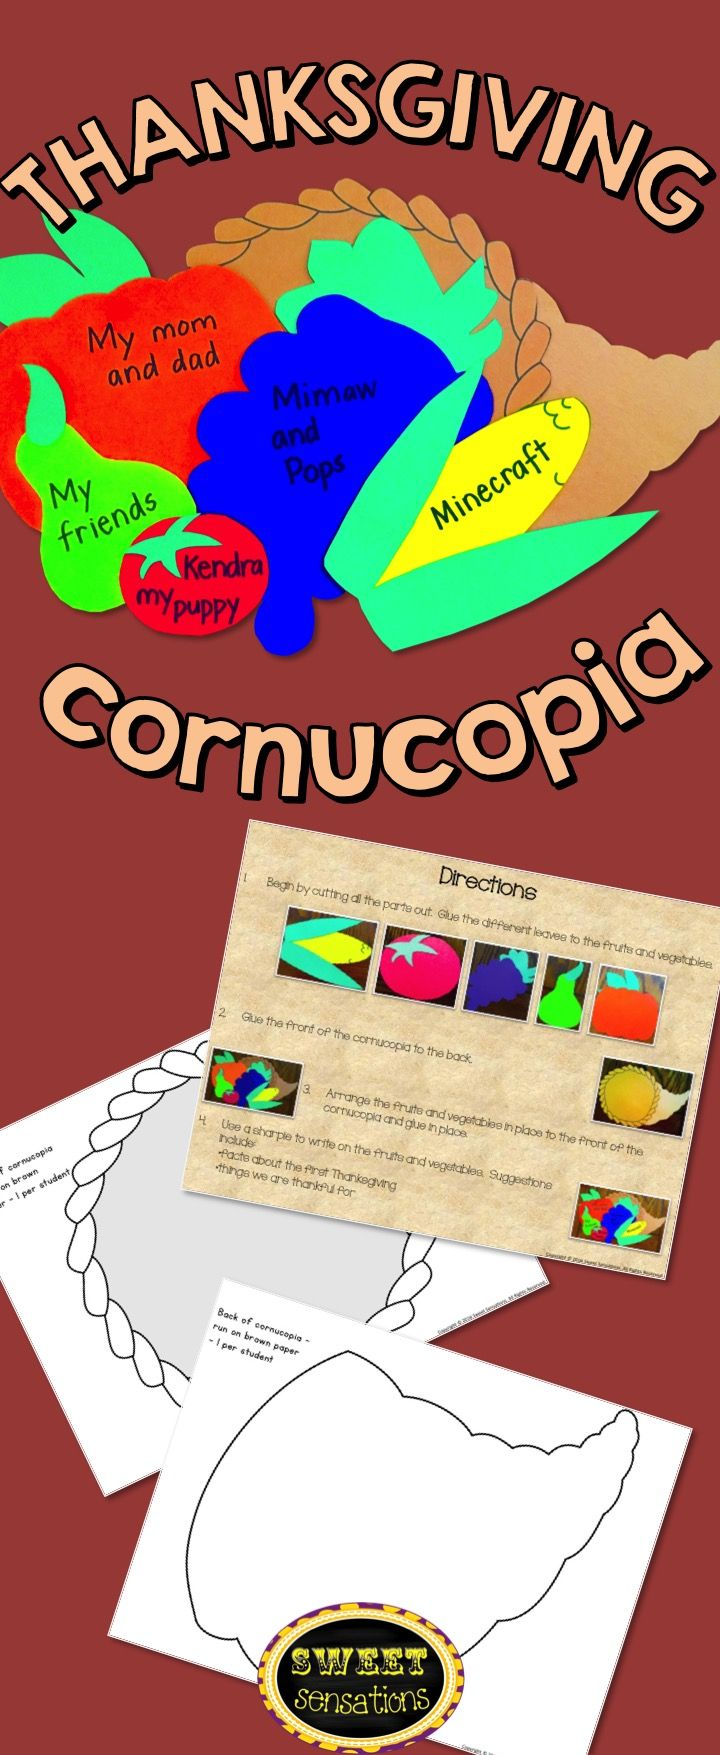 Thanksgiving cornucopia craft - simple shapes to cut out to make a cornucopia - can be run on colored paper or have students color themselves and record what they are thankful for.  Makes a great Thanksgiving centerpiece!